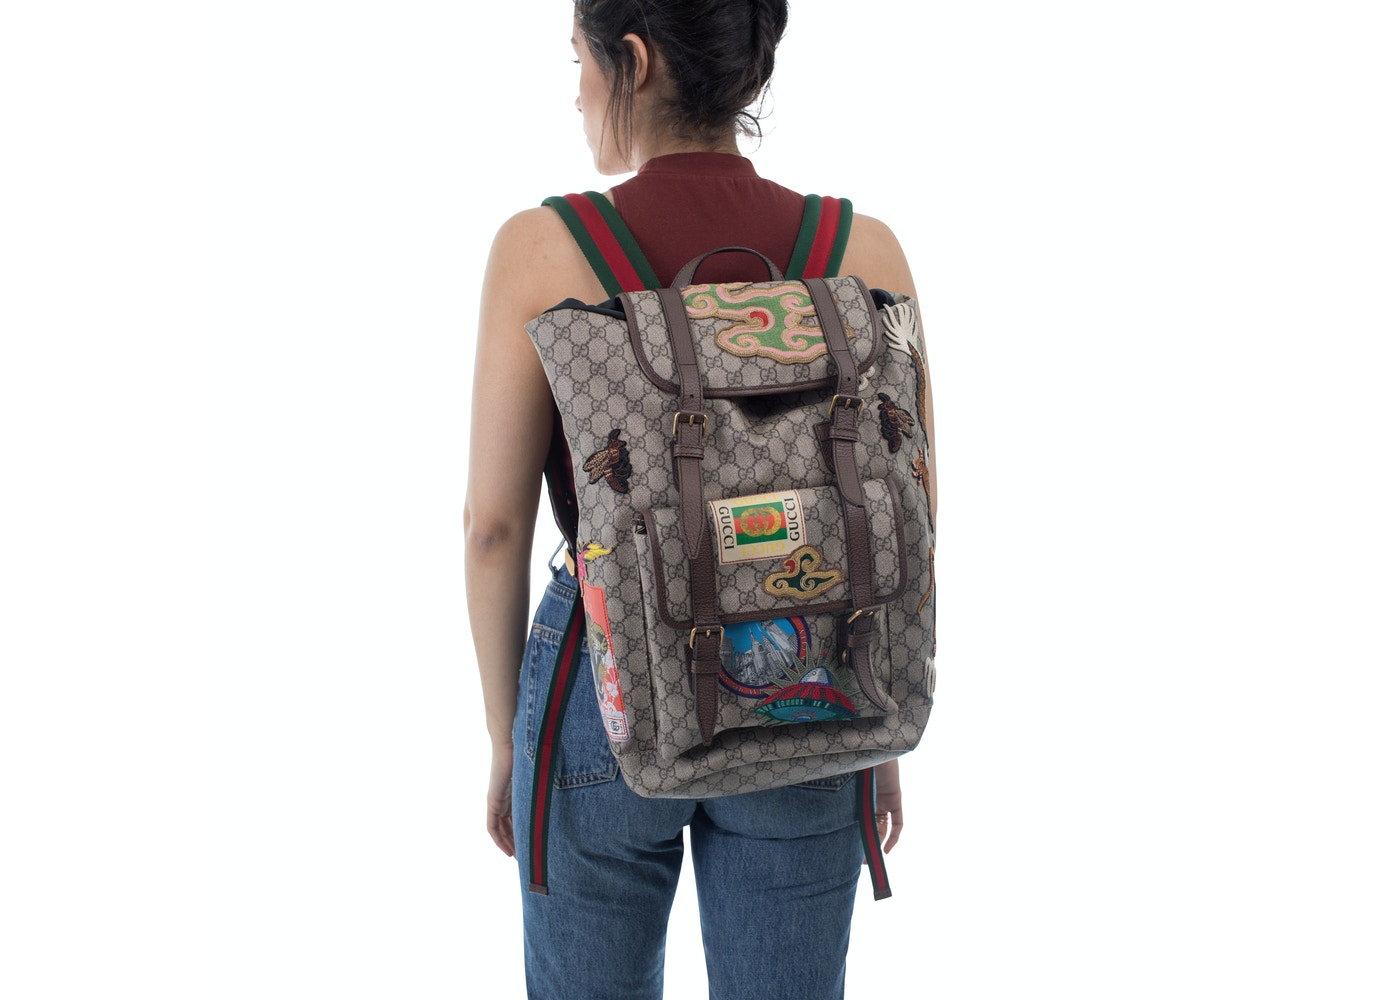 Gucci Courrier Soft Backpack GG Supreme Embroidered Patches  Beige Ebony Multicolor 25787cb4bd857